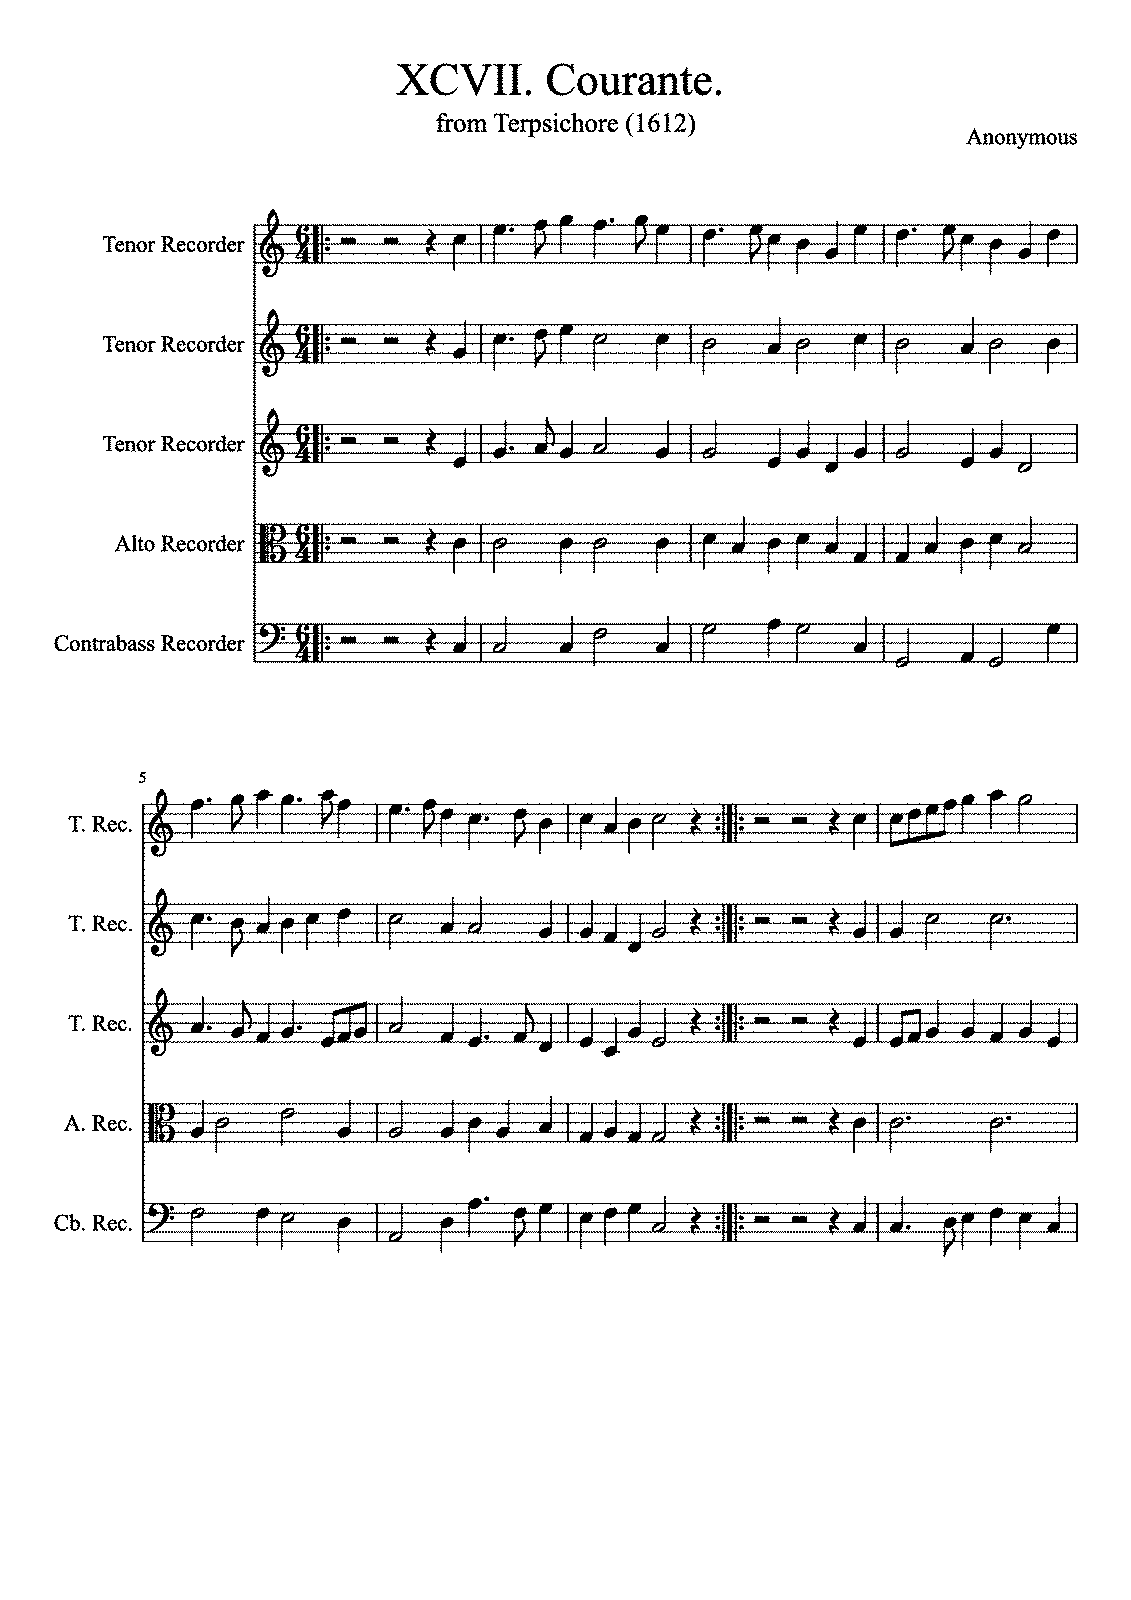 PMLP592010-XCVII Courante from Terpsichore Anonymous 1612.pdf